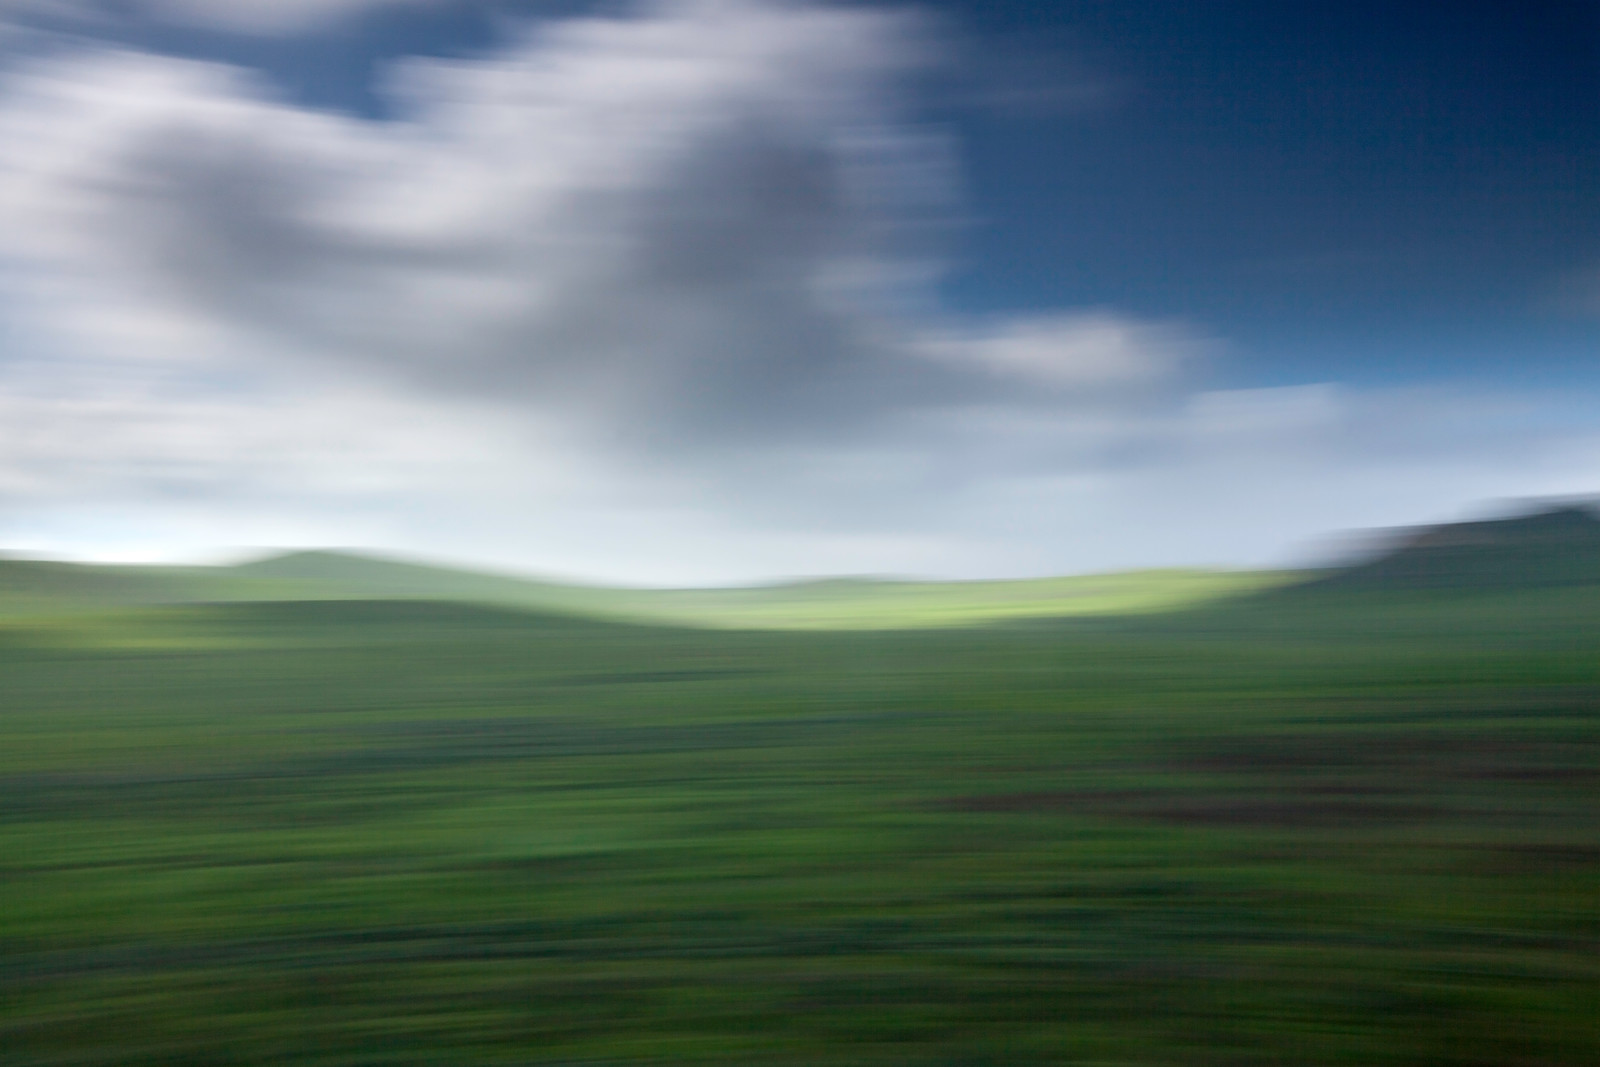 Green Hills and Clouds with motion blur, Irvine Ca.